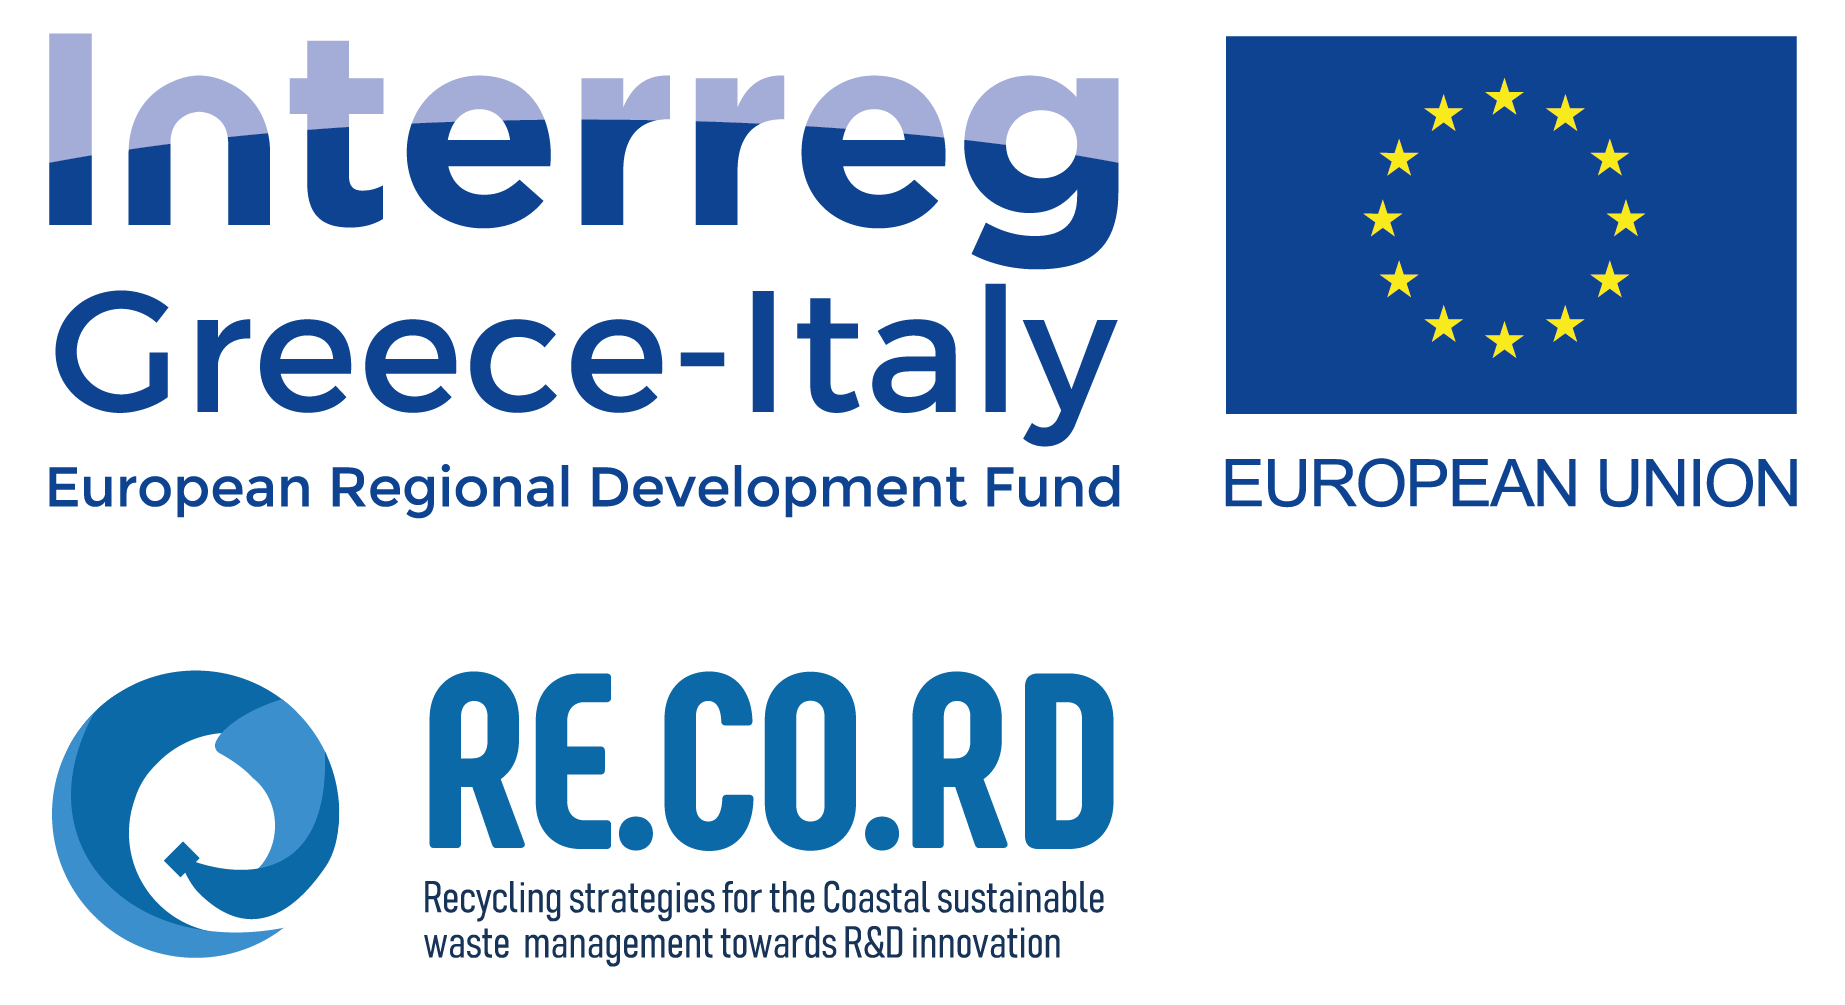 Interreg RE.CO.RD